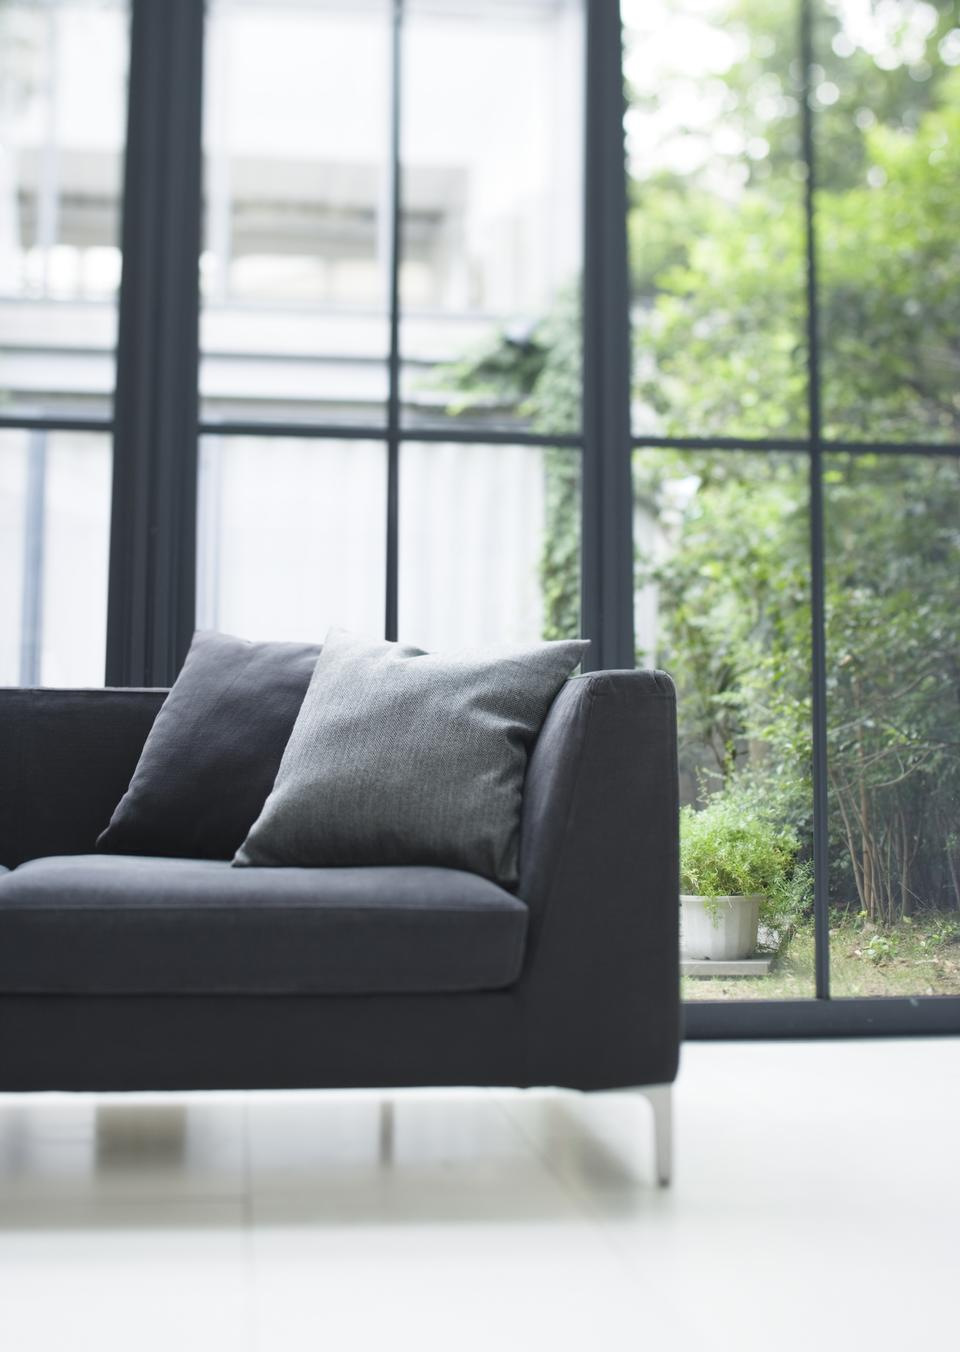 Comfy sofa with cushions against glass windows in the living room